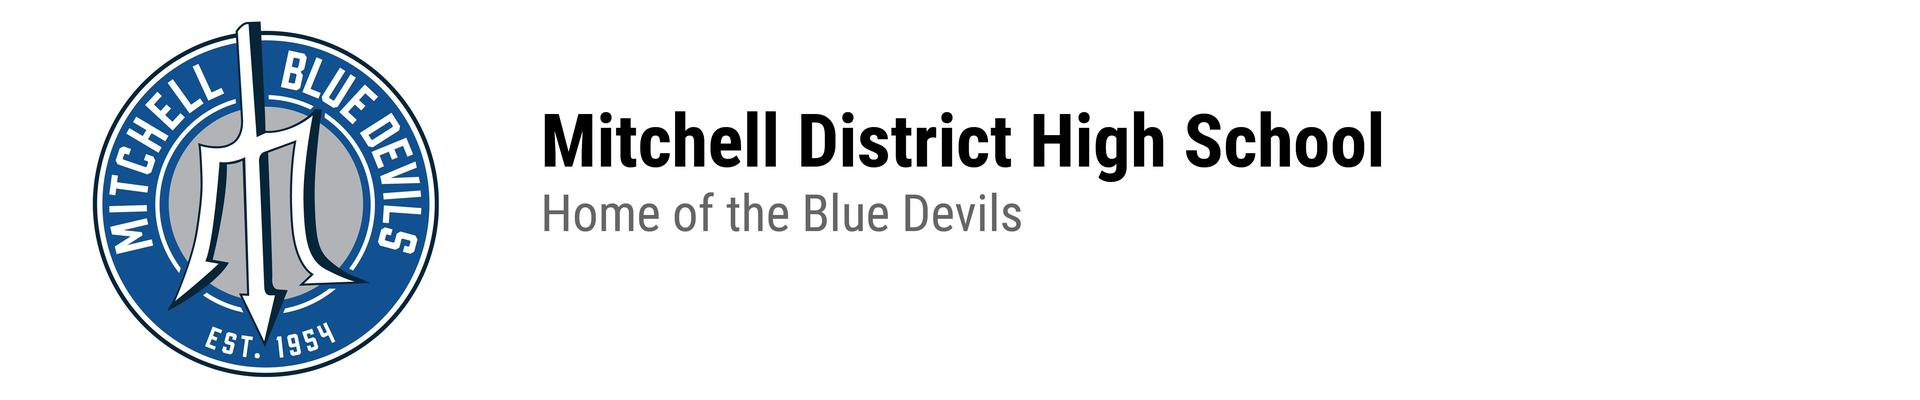 MDHS logo. Mitchell District High School. Home of the Blue Devils